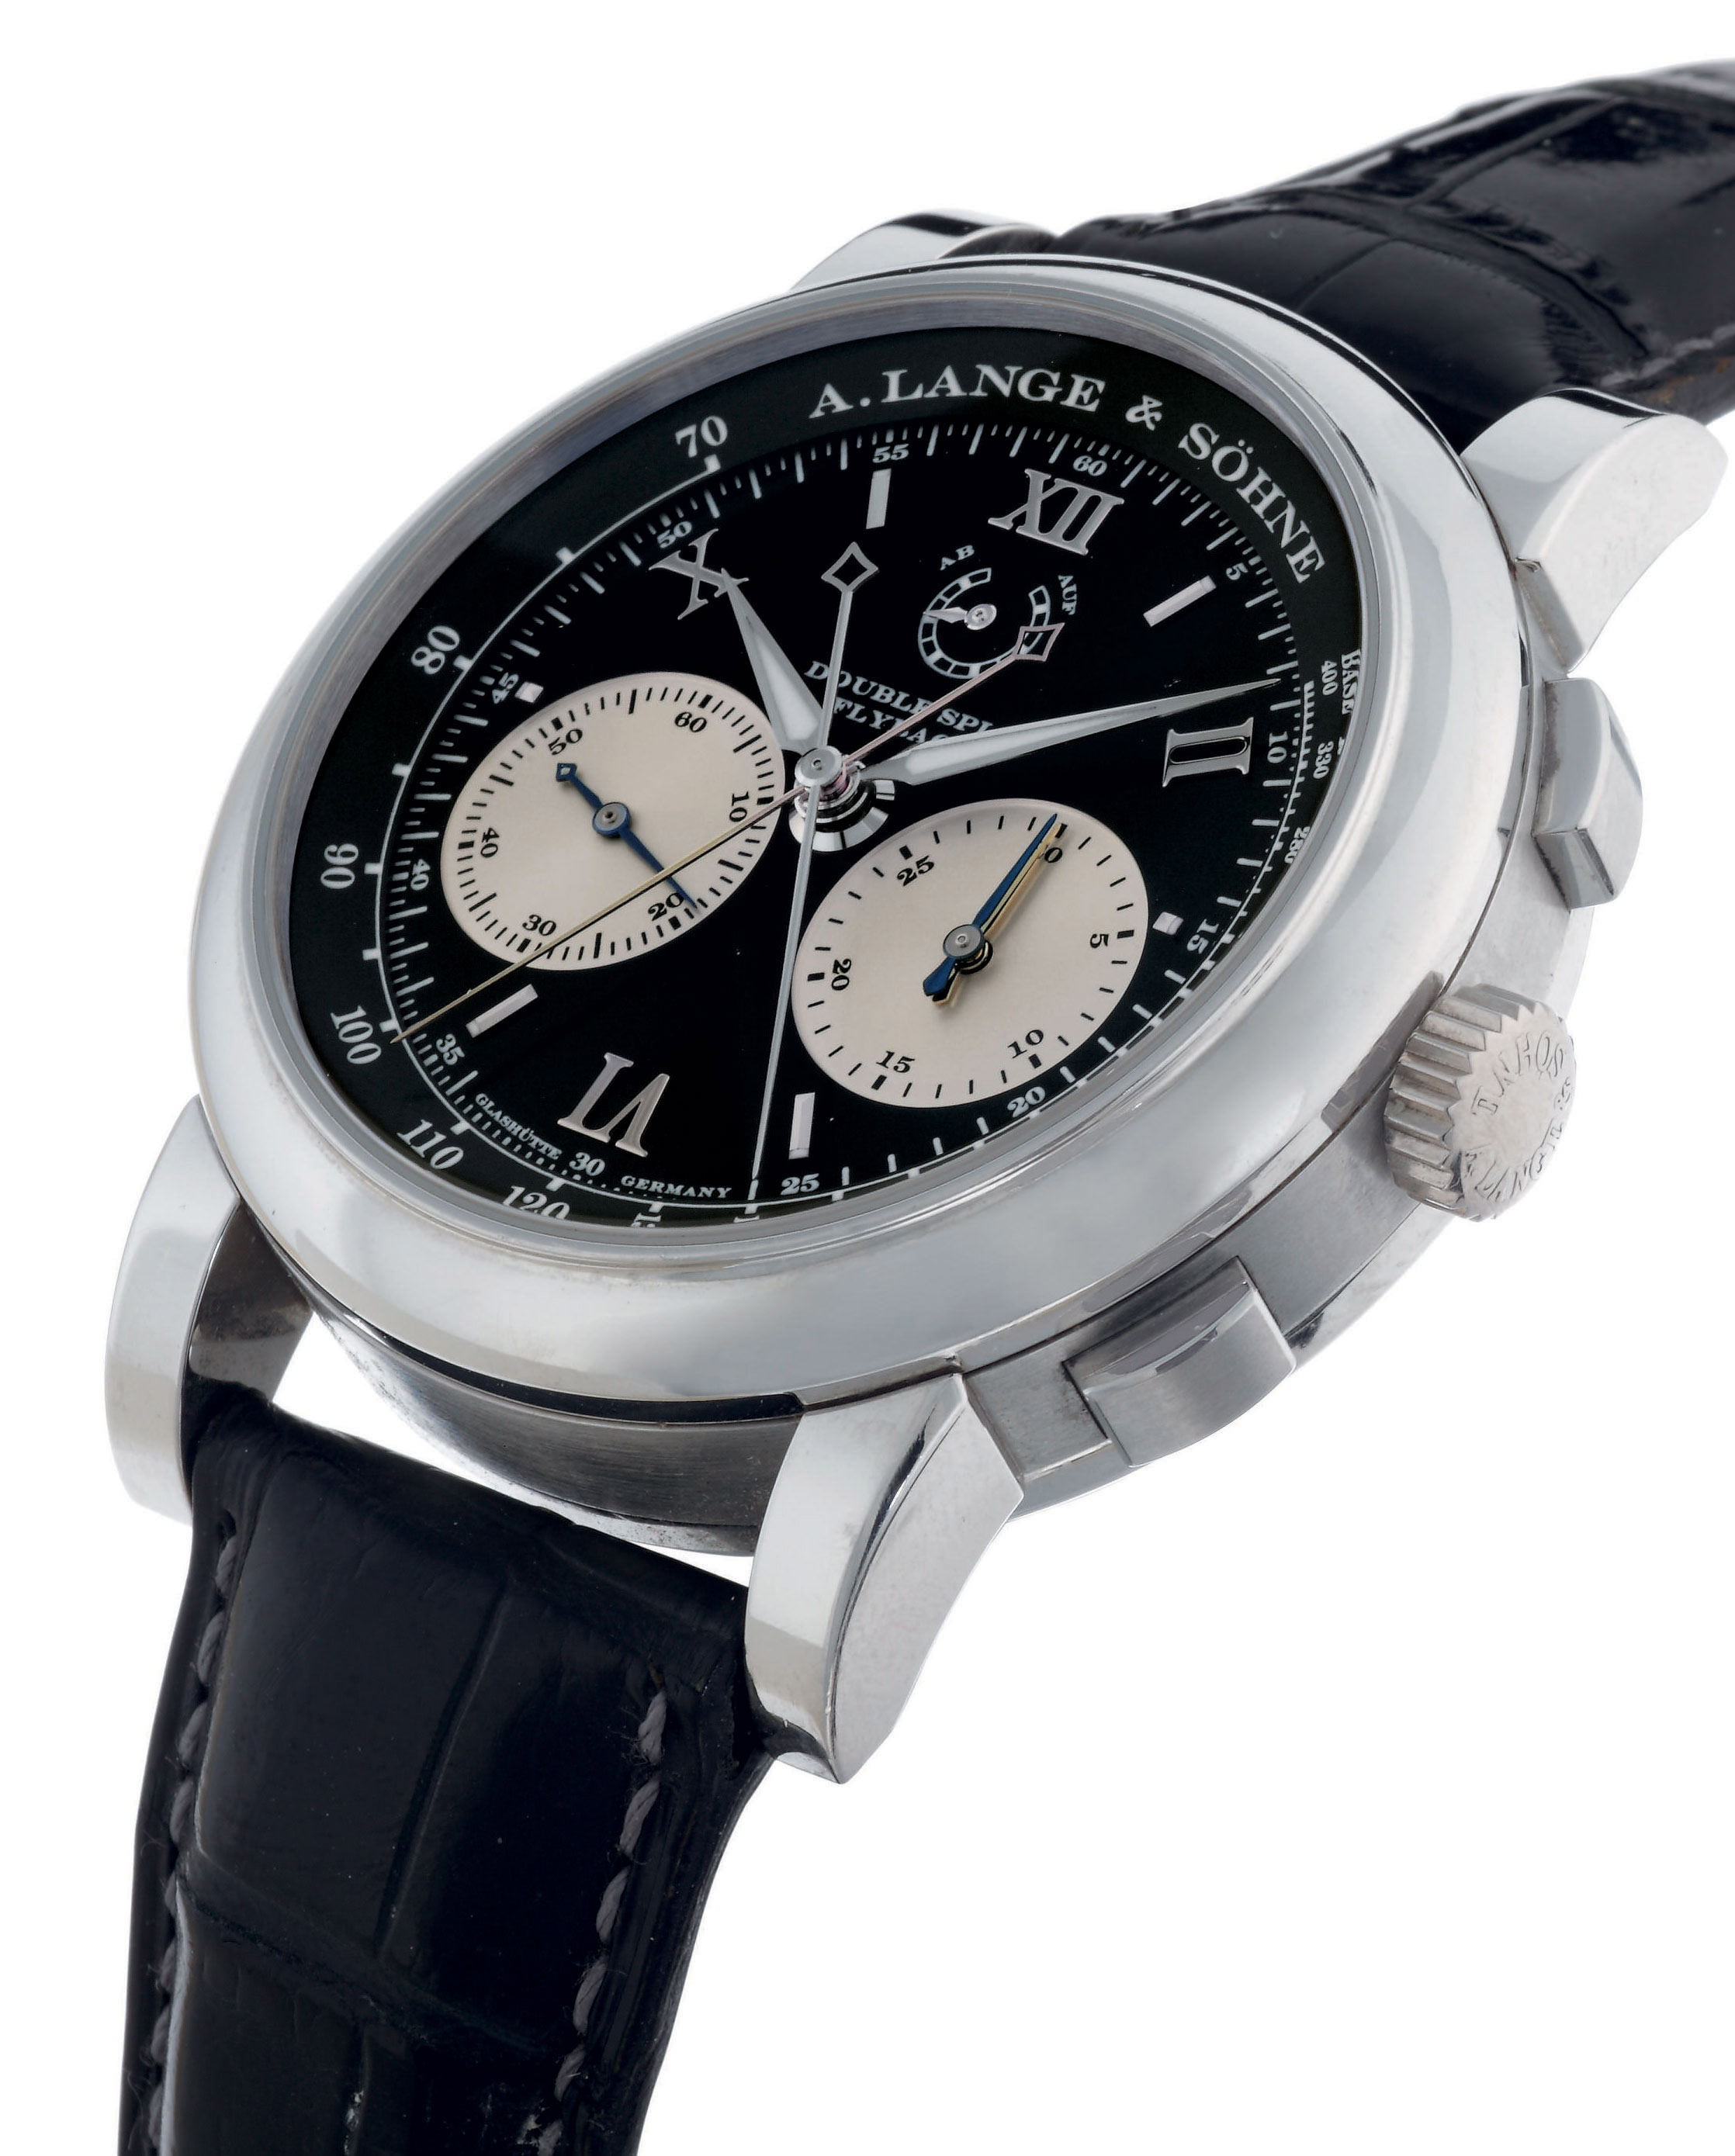 A. LANGE & SÖHNE. A VERY FINE, LARGE AND RARE PLATINUM DOUBLE SPLIT SECONDS FLYBACK CHRONOGRAPH WRISTWATCH WITH POWER RESERVE